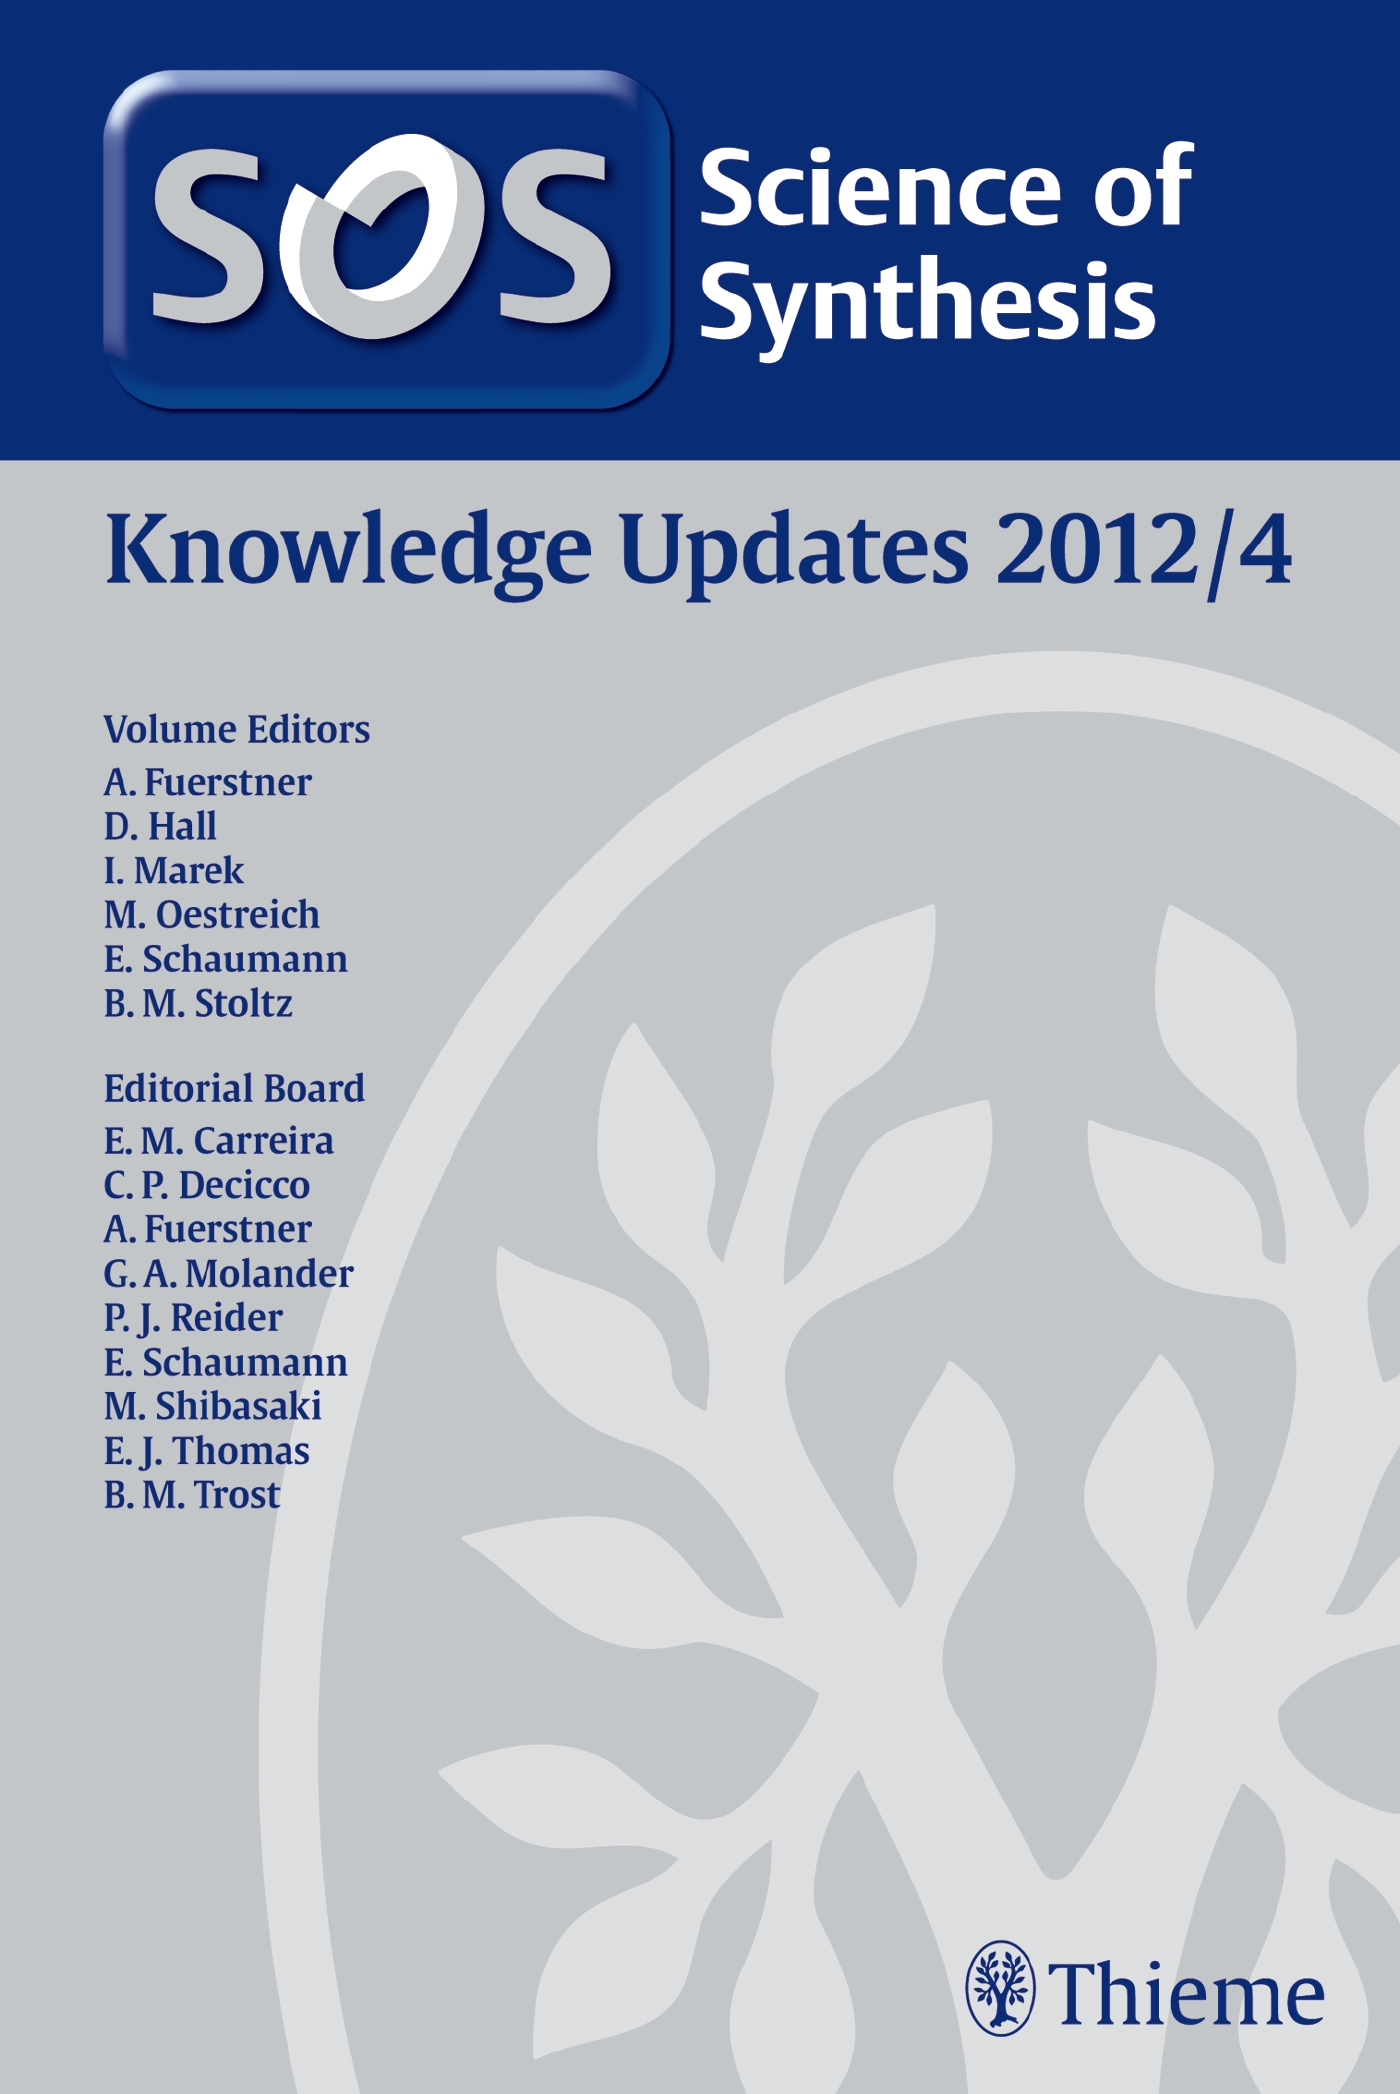 Science of Synthesis Knowledge Updates 2012 Vol. 4